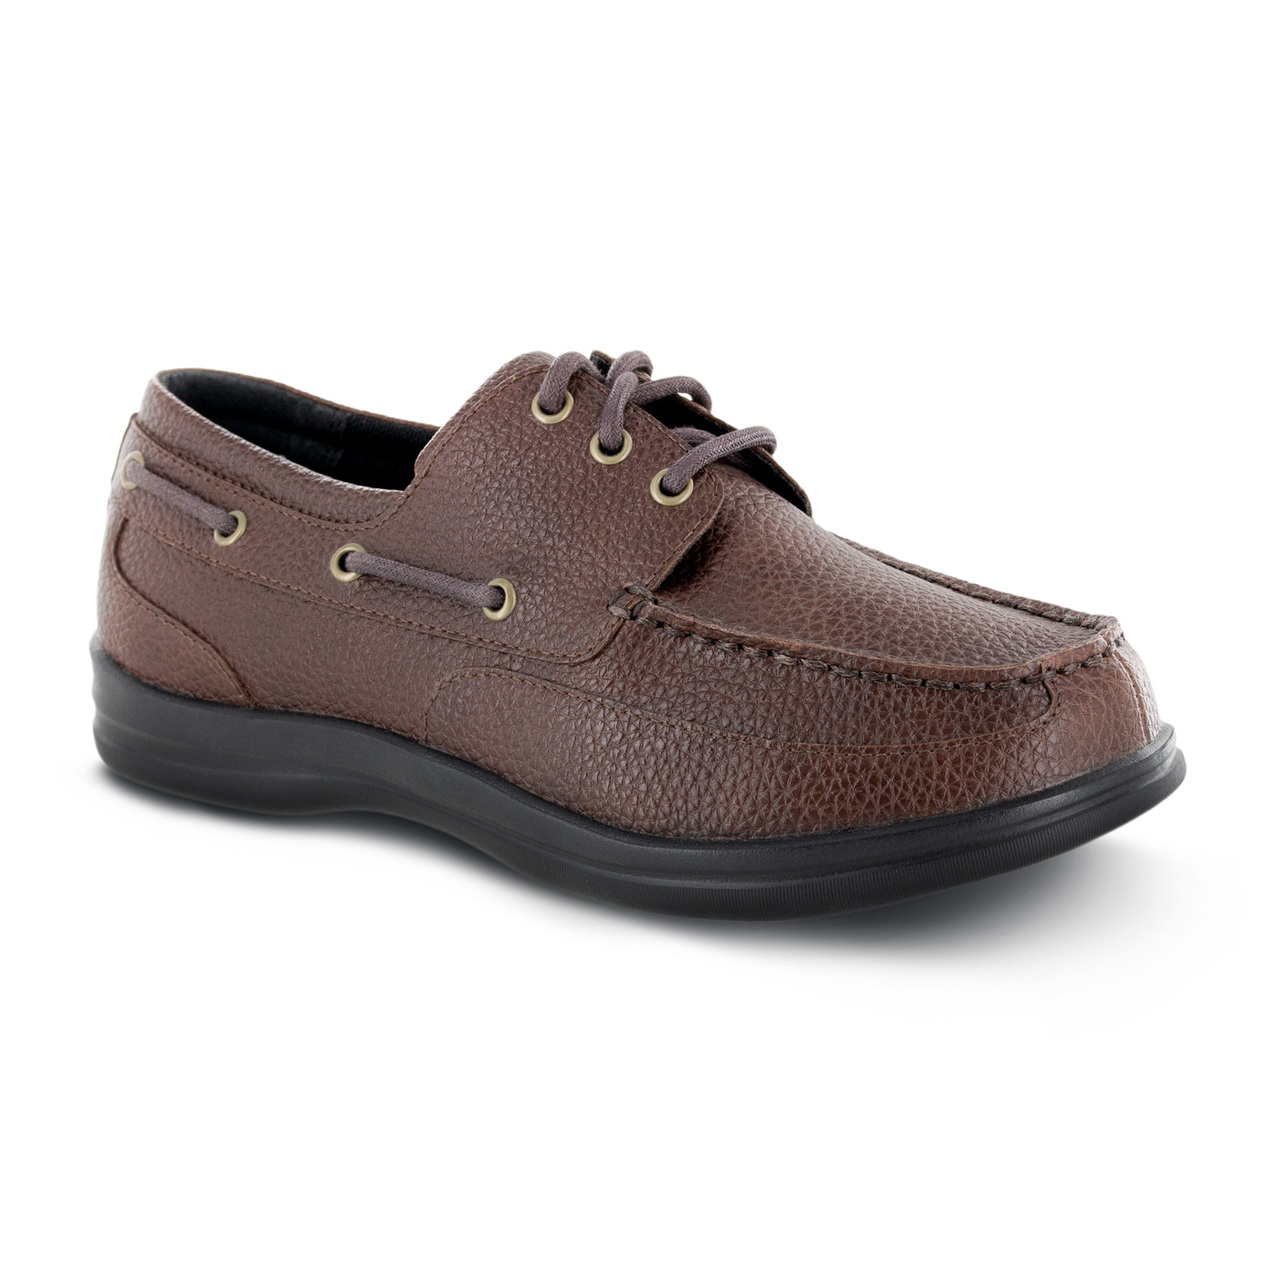 8ed35b163f0 Apex Classic Lace Boat Shoe (A1100M) qualifies for A5500.